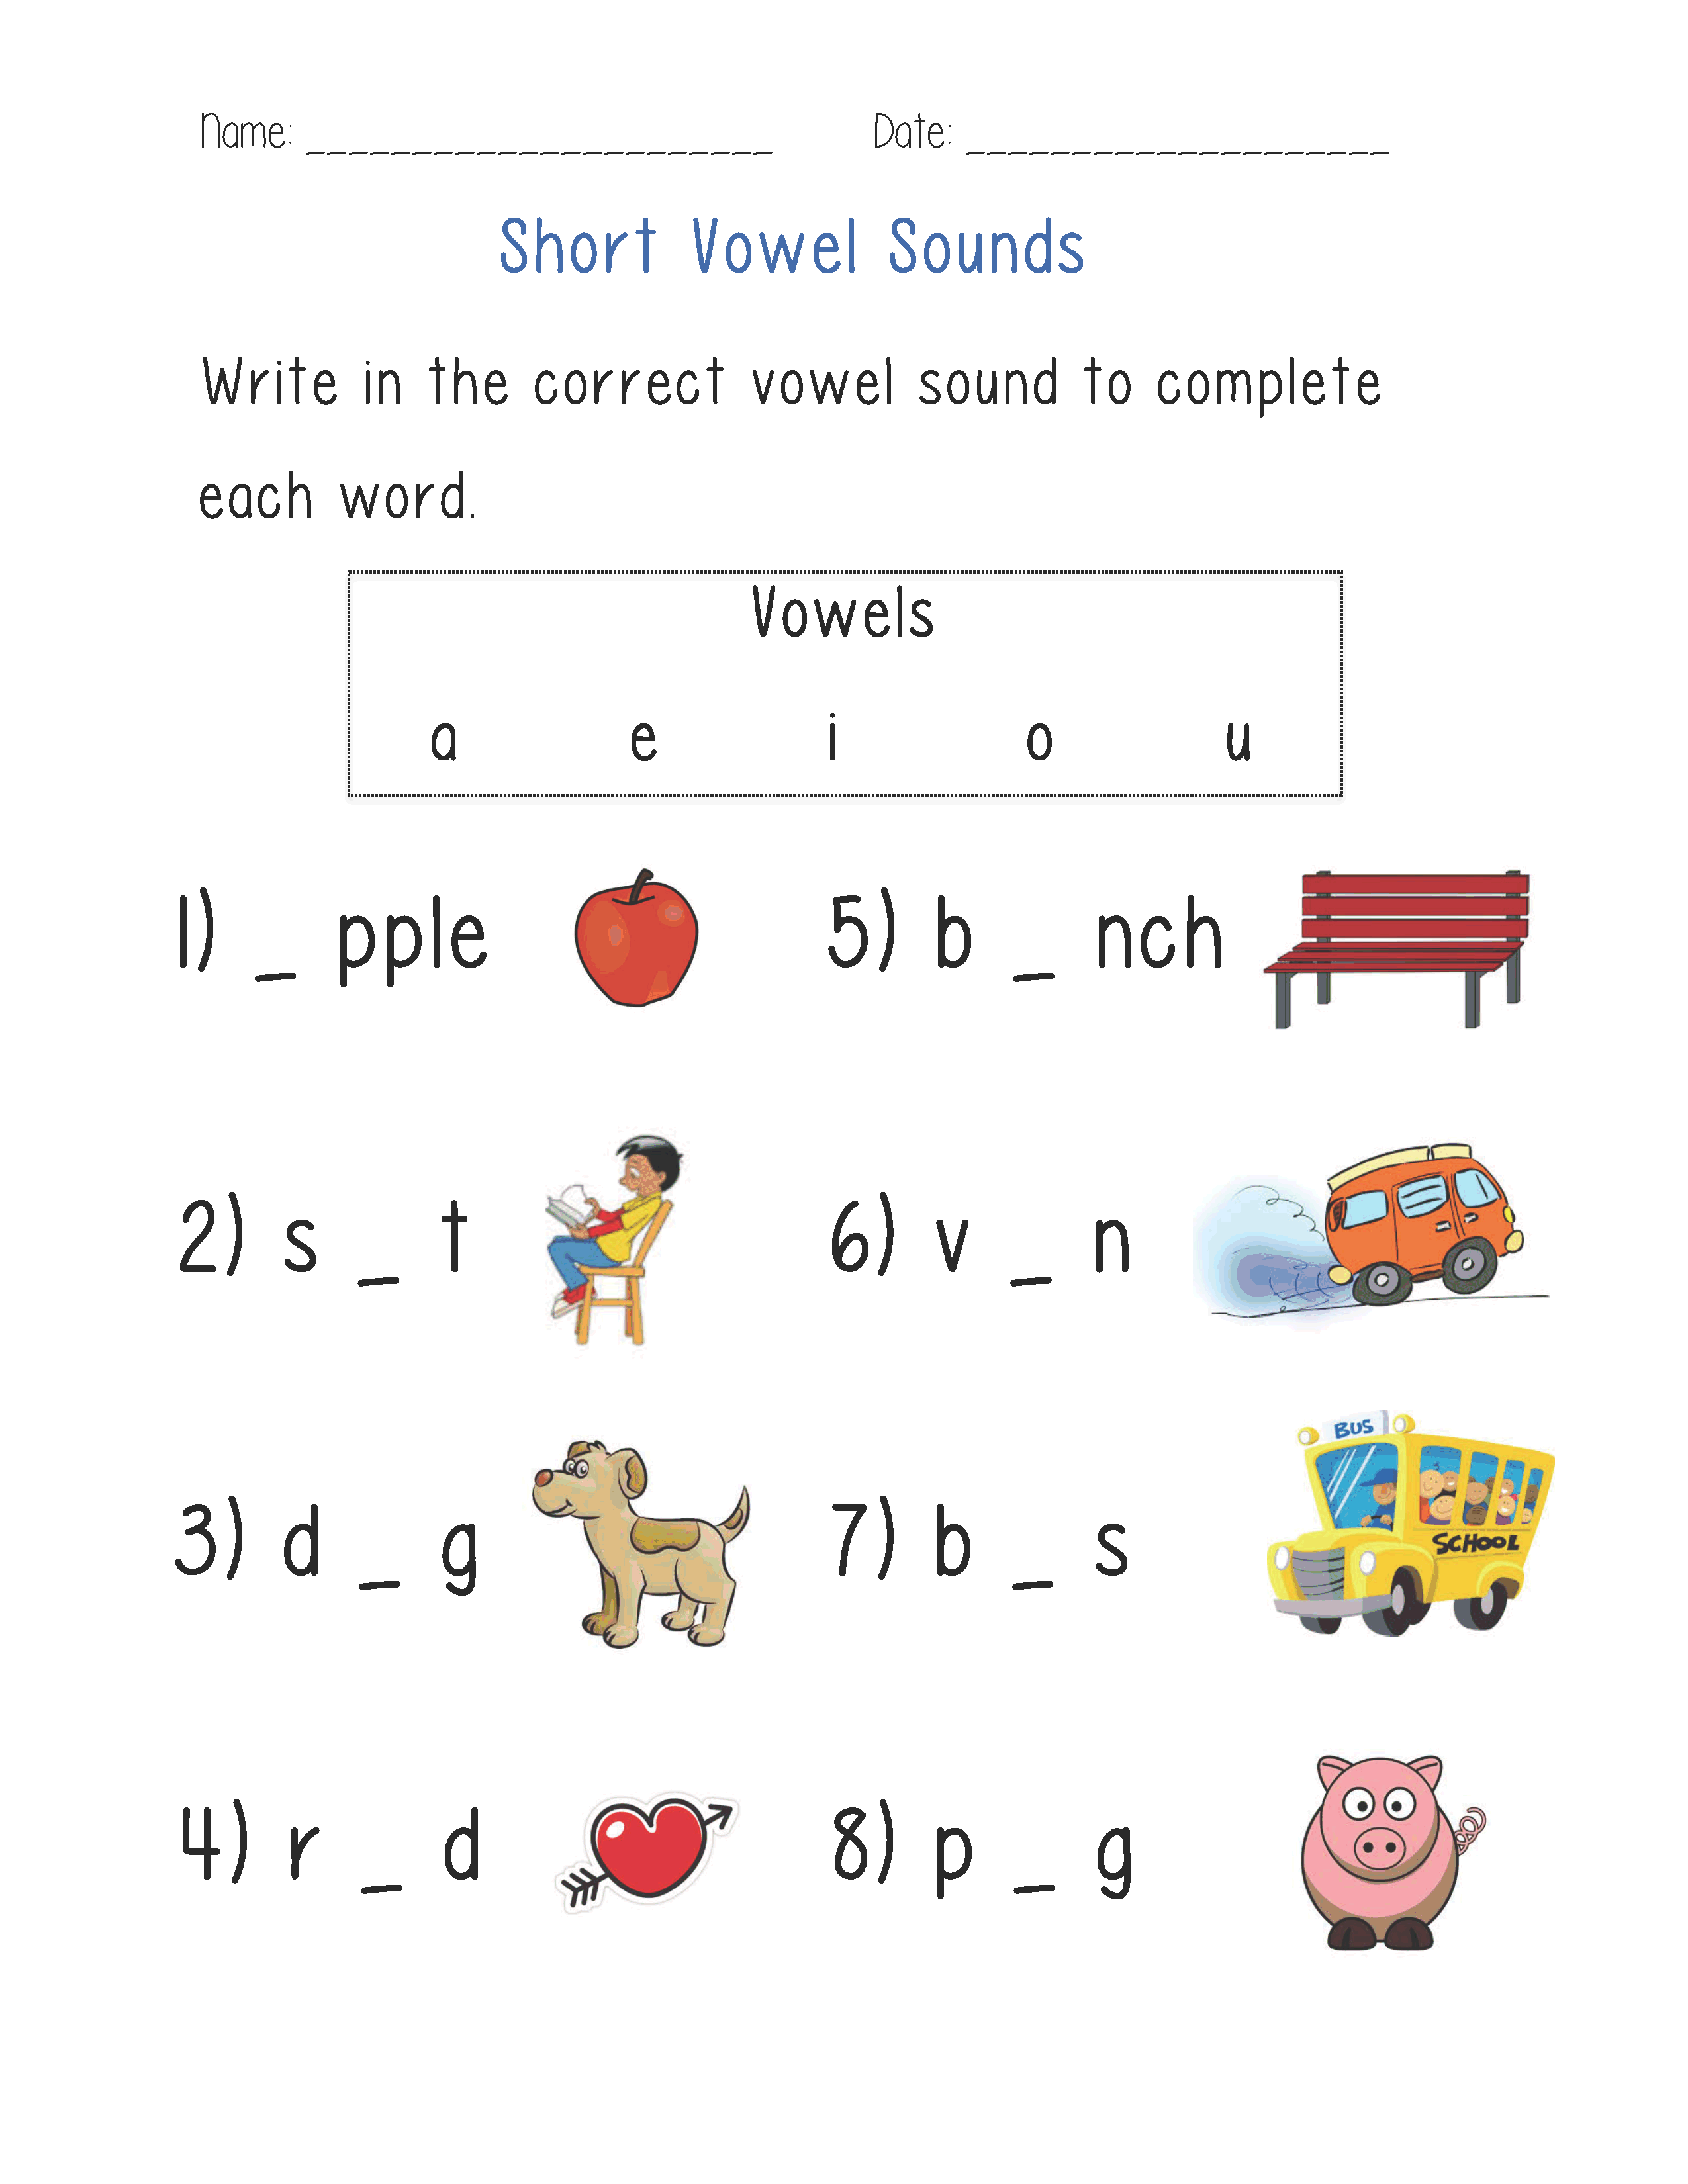 Worksheets Bossy R Worksheets la worksheets 1st to 5th grade homeschool math pinterest this vowels worksheet directs the student write in correct vowel sound complete each word is a fun e